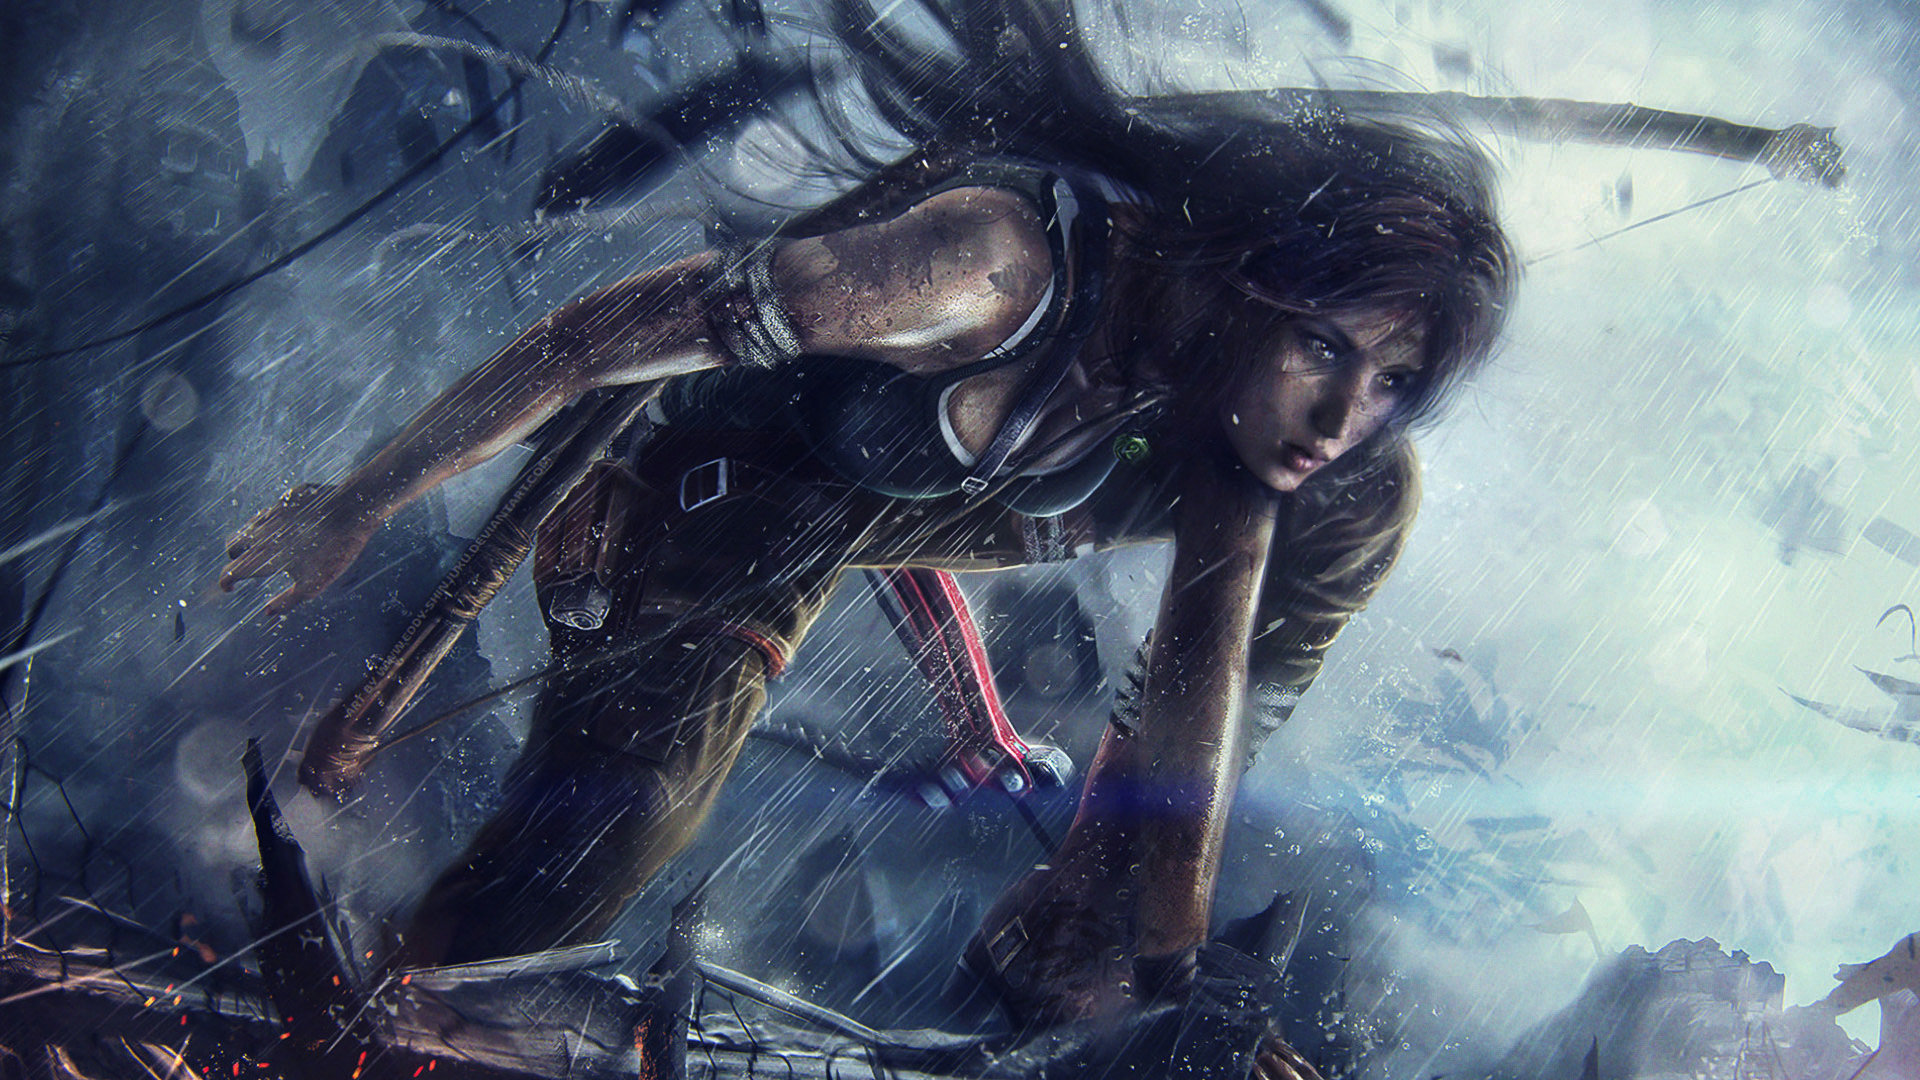 tomb raider wallpaper hd 1920x1080